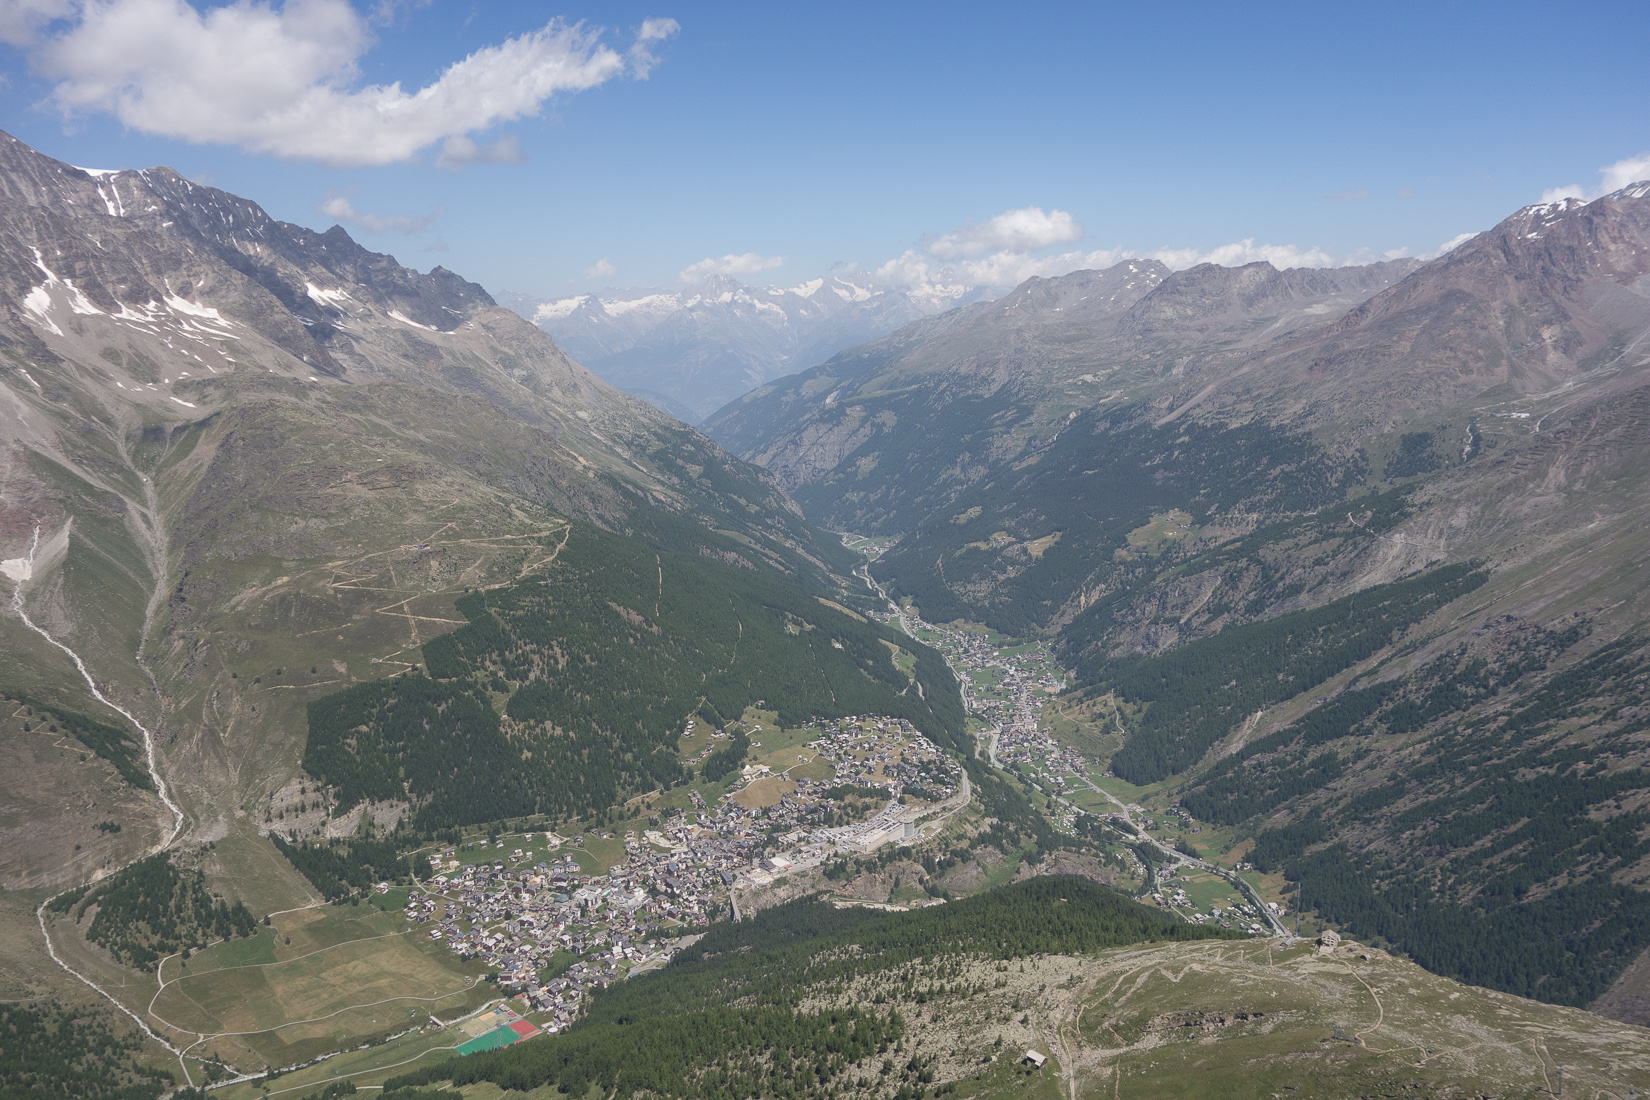 Great view of the Saas Valley